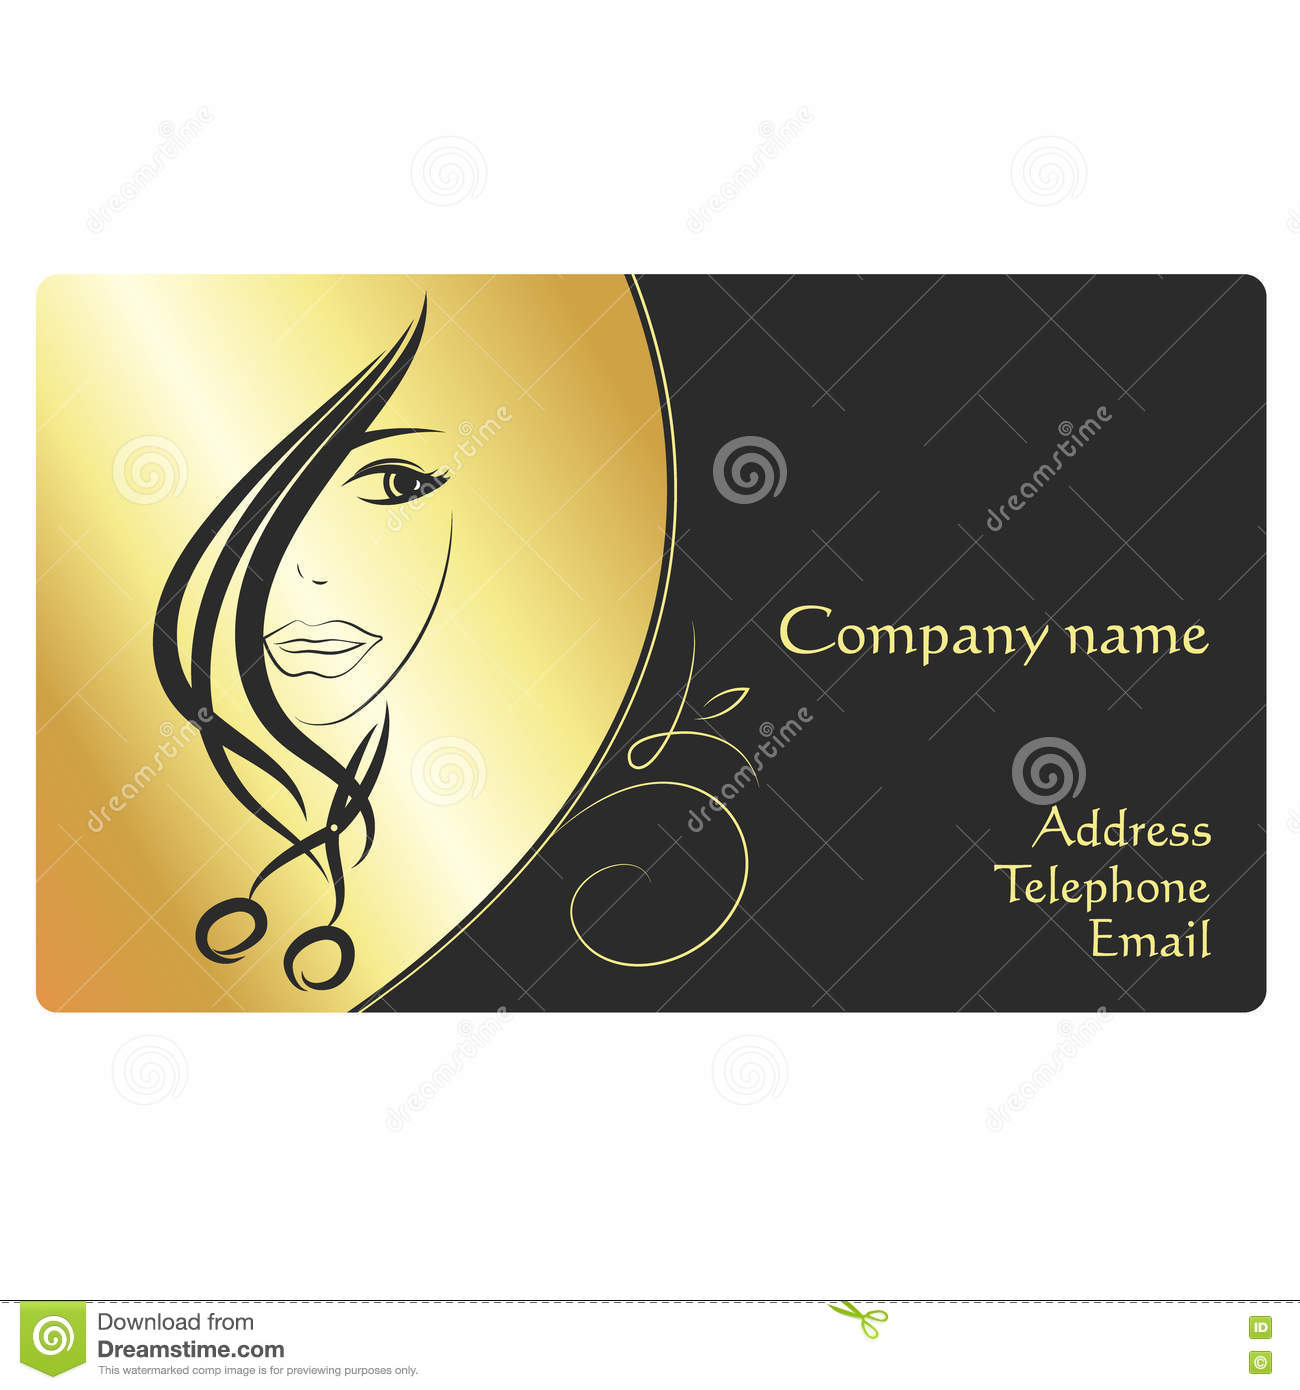 Beauty salon business card stock vector. Illustration of beautiful ...